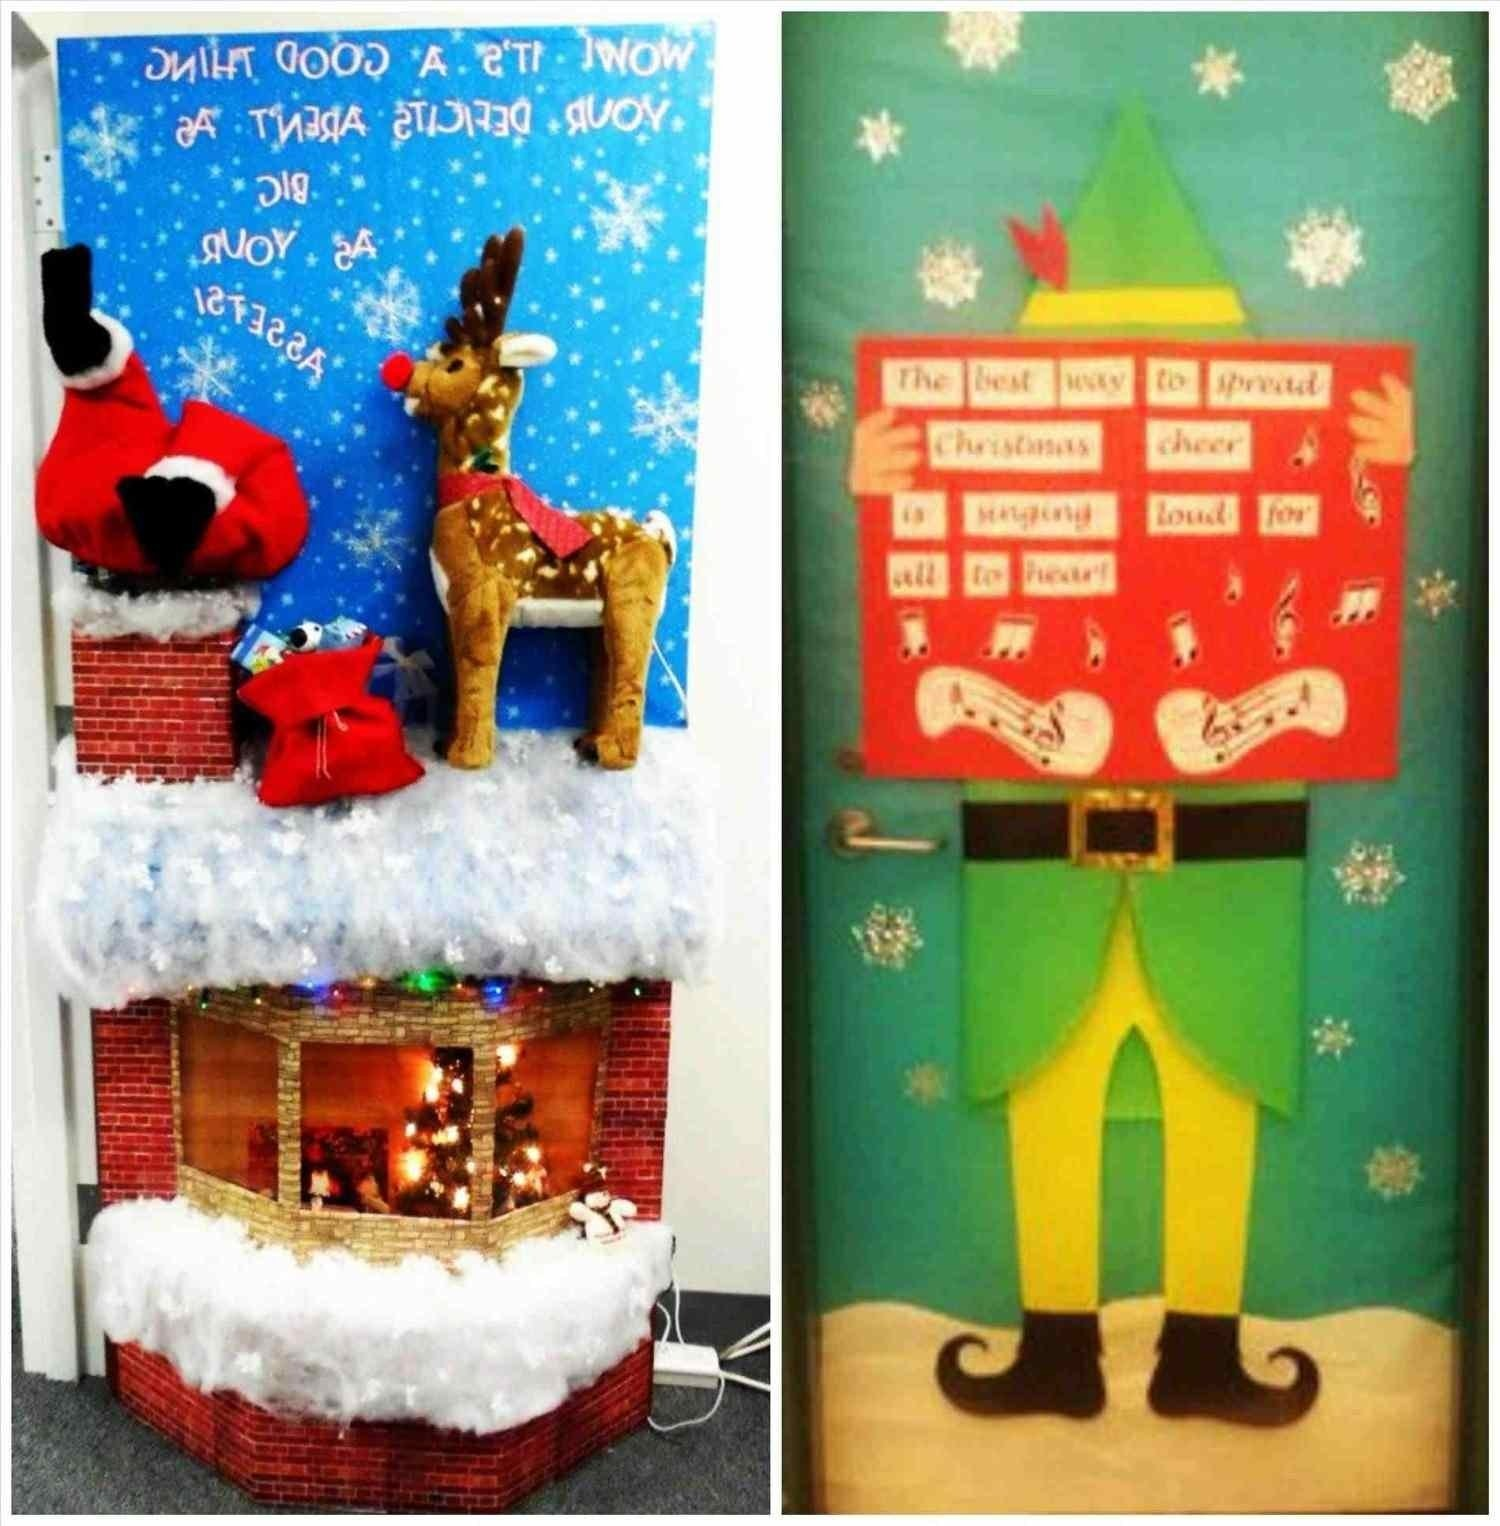 Door Decorations Christmas Contest: 10 Amazing Funny Christmas Door Decorating Contest Ideas